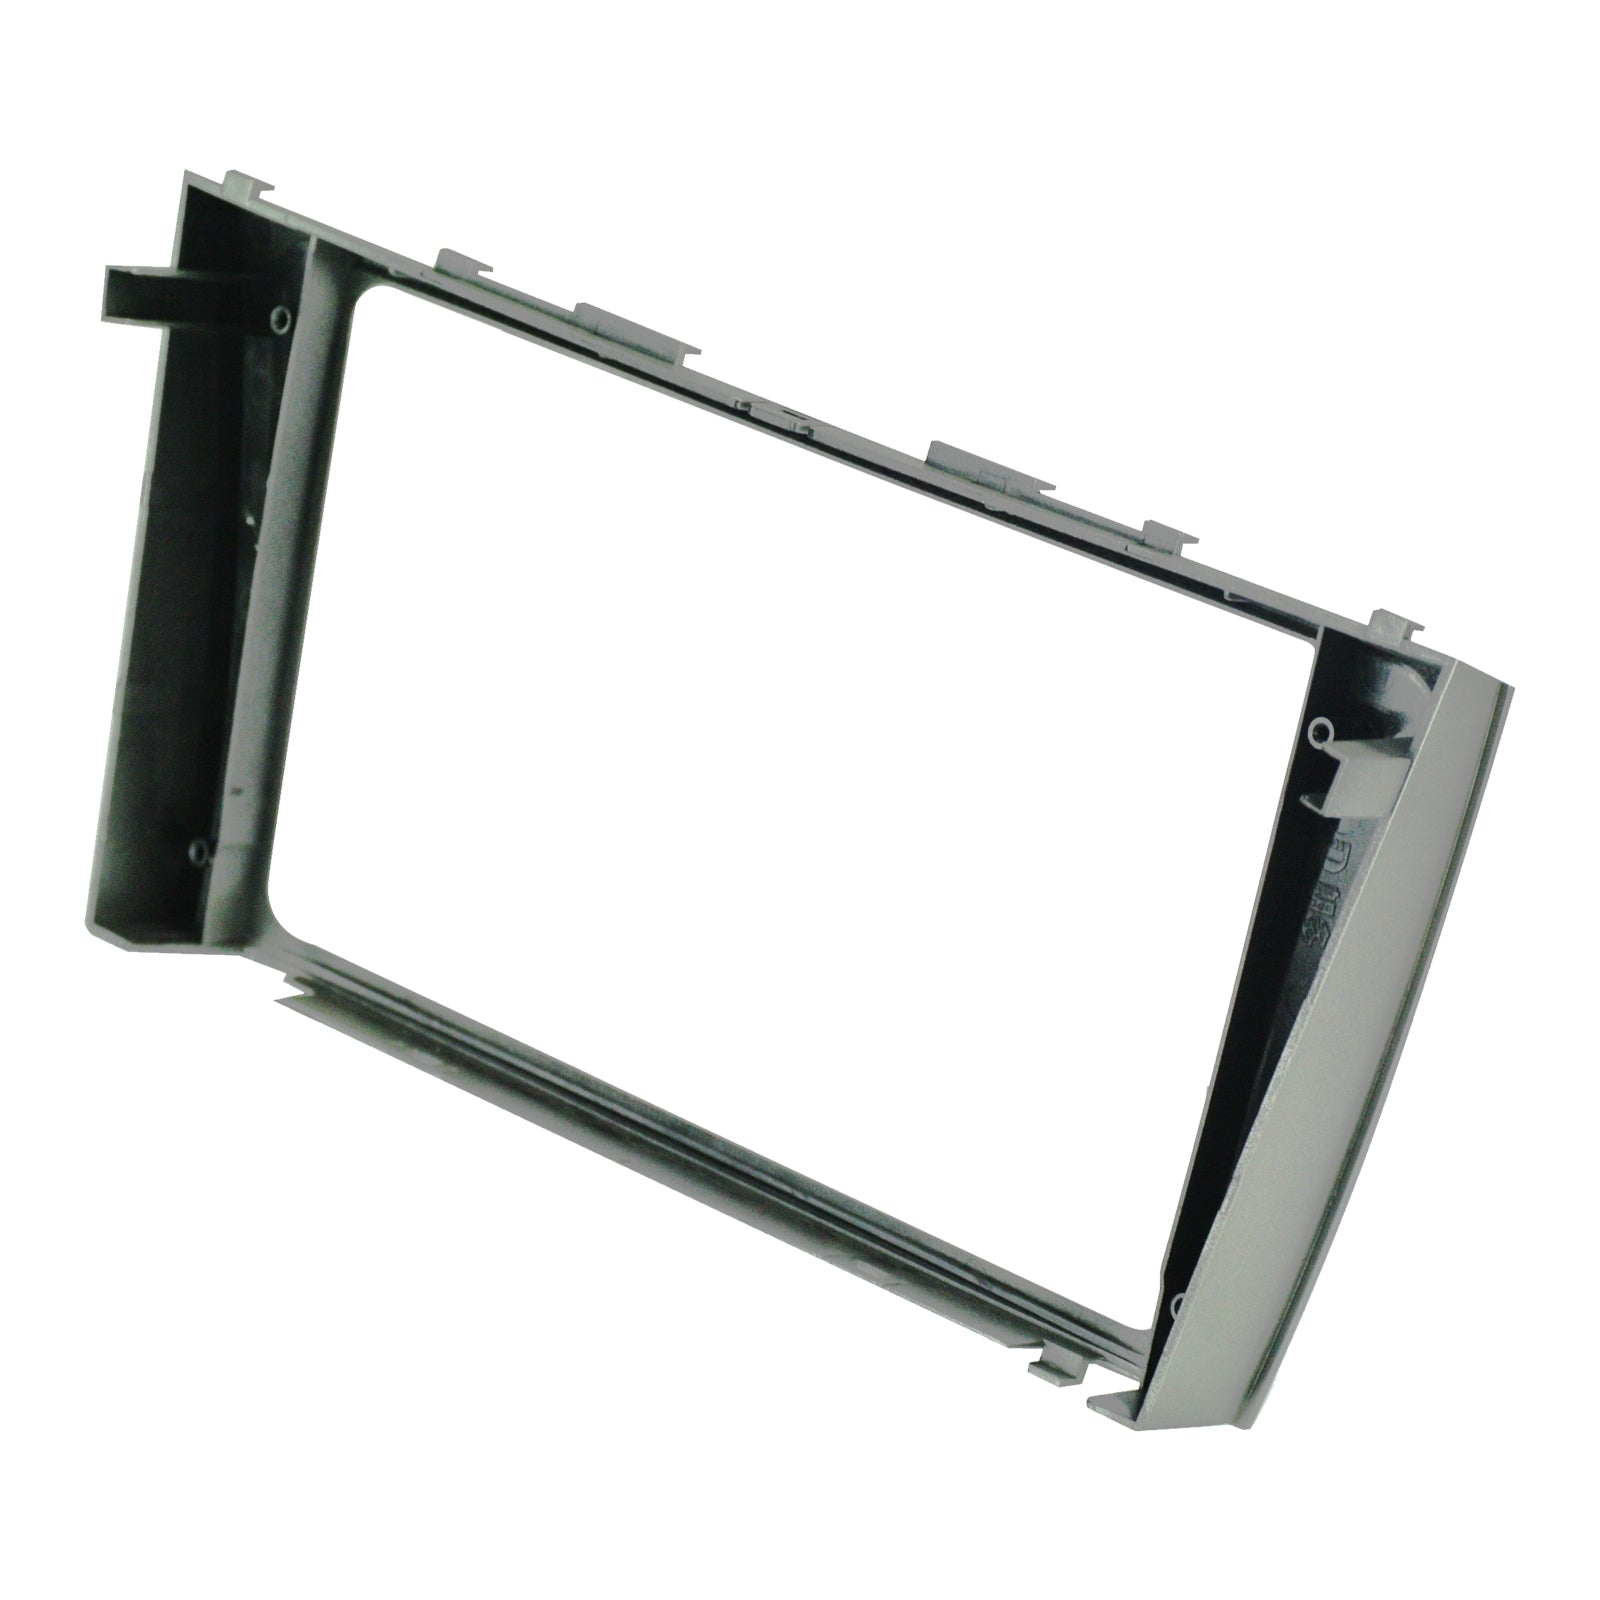 Double Din car Radio In-Dash Mounting Frame for Toyota Camry